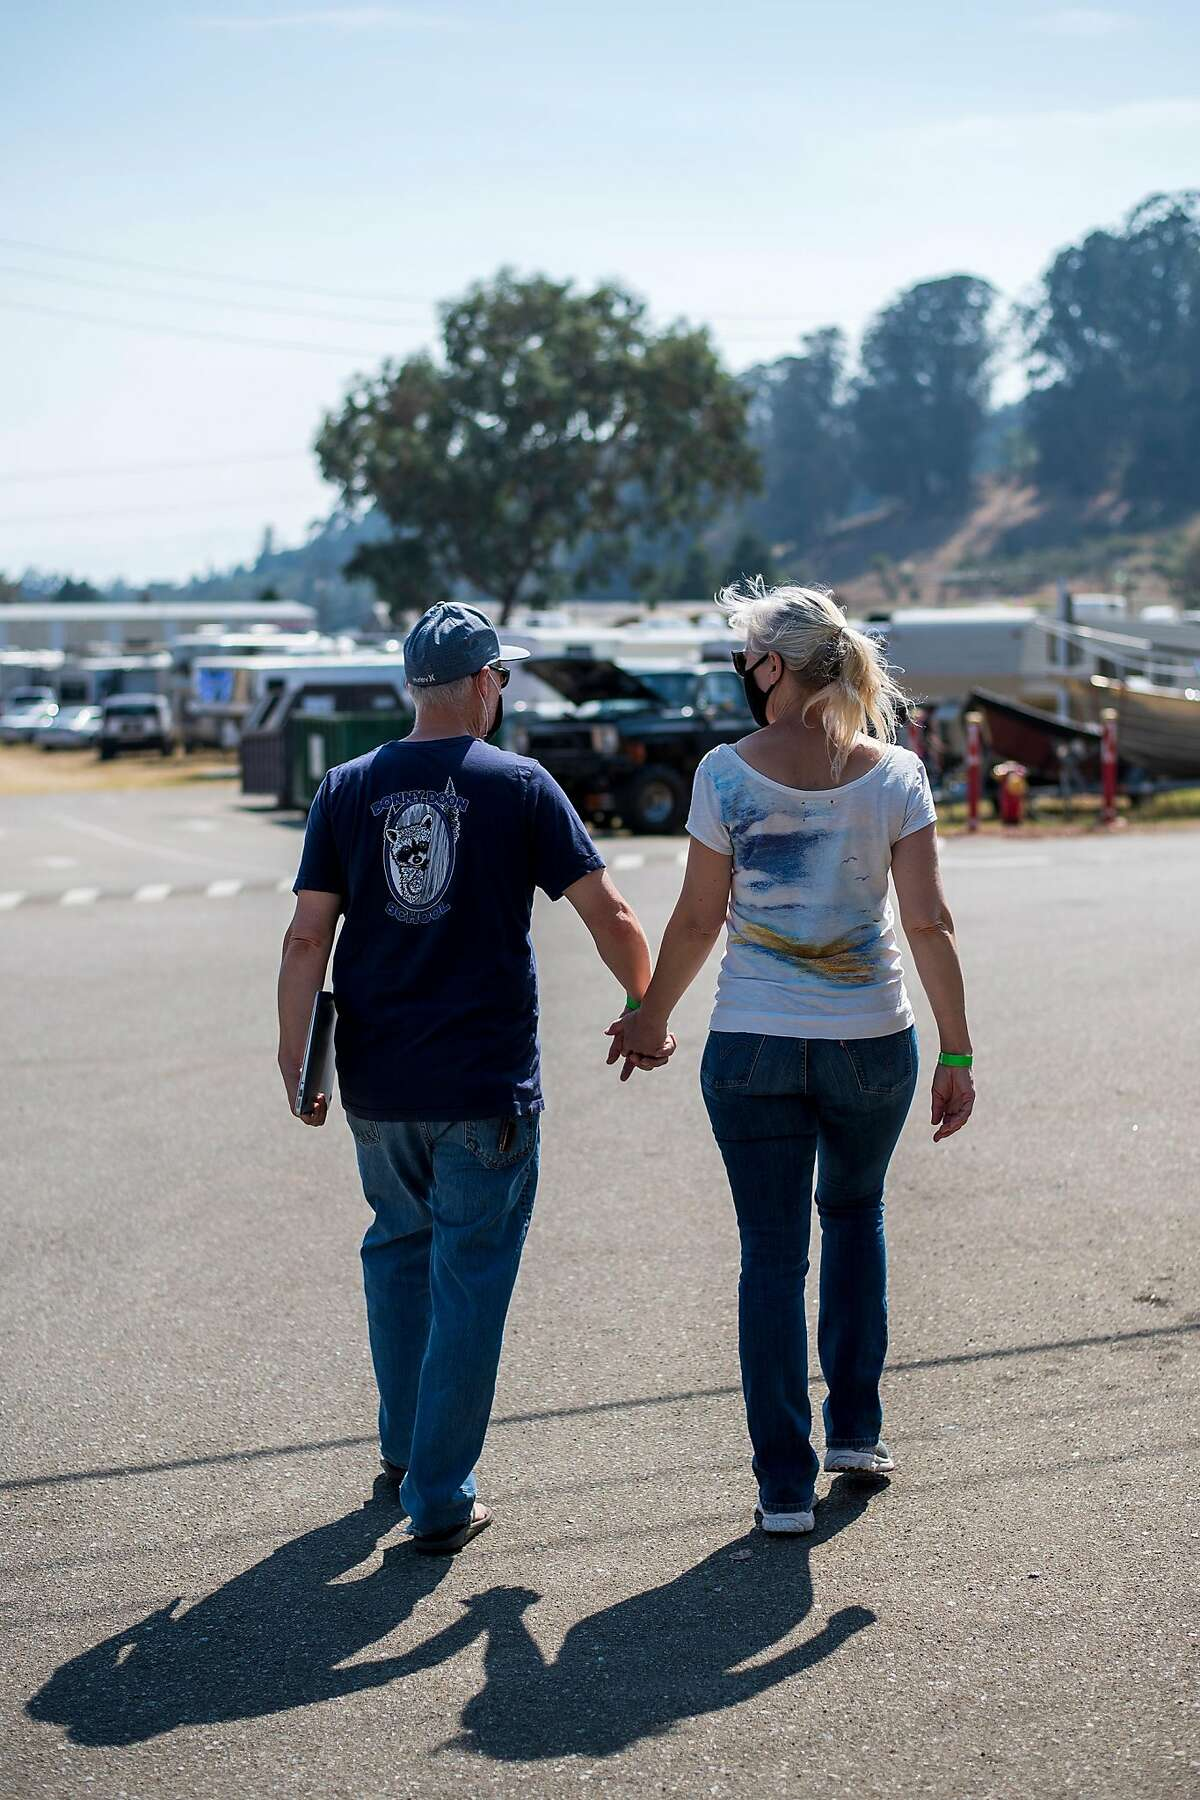 Mike Heffner, Superintendent-Principal of the Bonny Doon Union Elementary School District, (left) walks with his wife Susan through the 7th Day Adventist church evacuation center in Soquel, Calif. on Aug., 24, 2020.